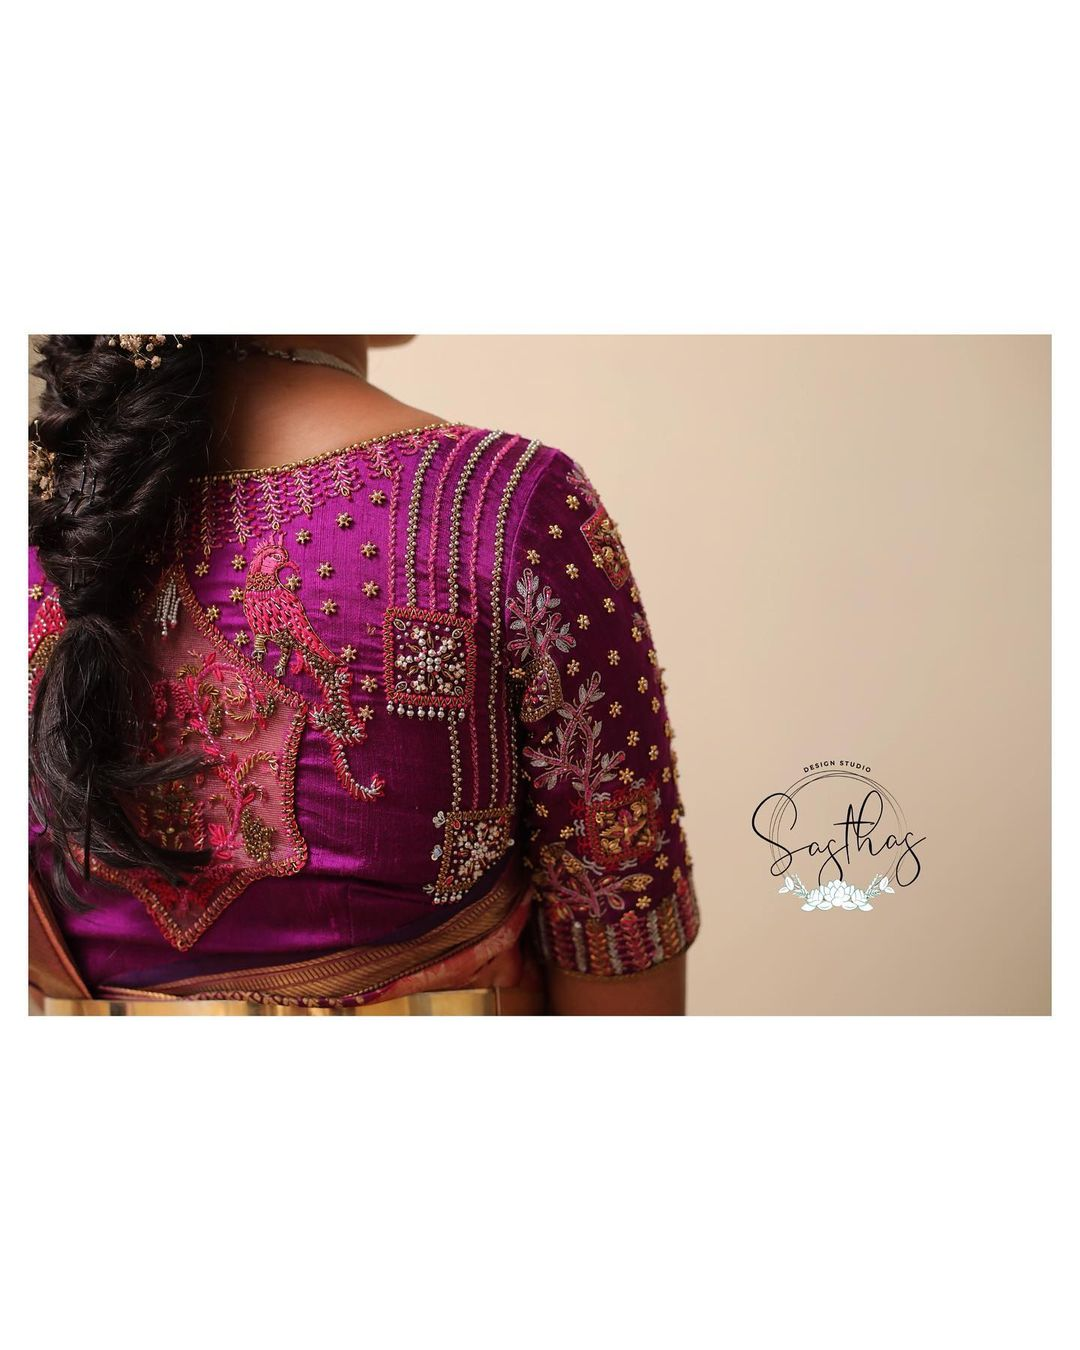 Stunning purple color designer blouse with floral maggam work blouse. 2020-12-31